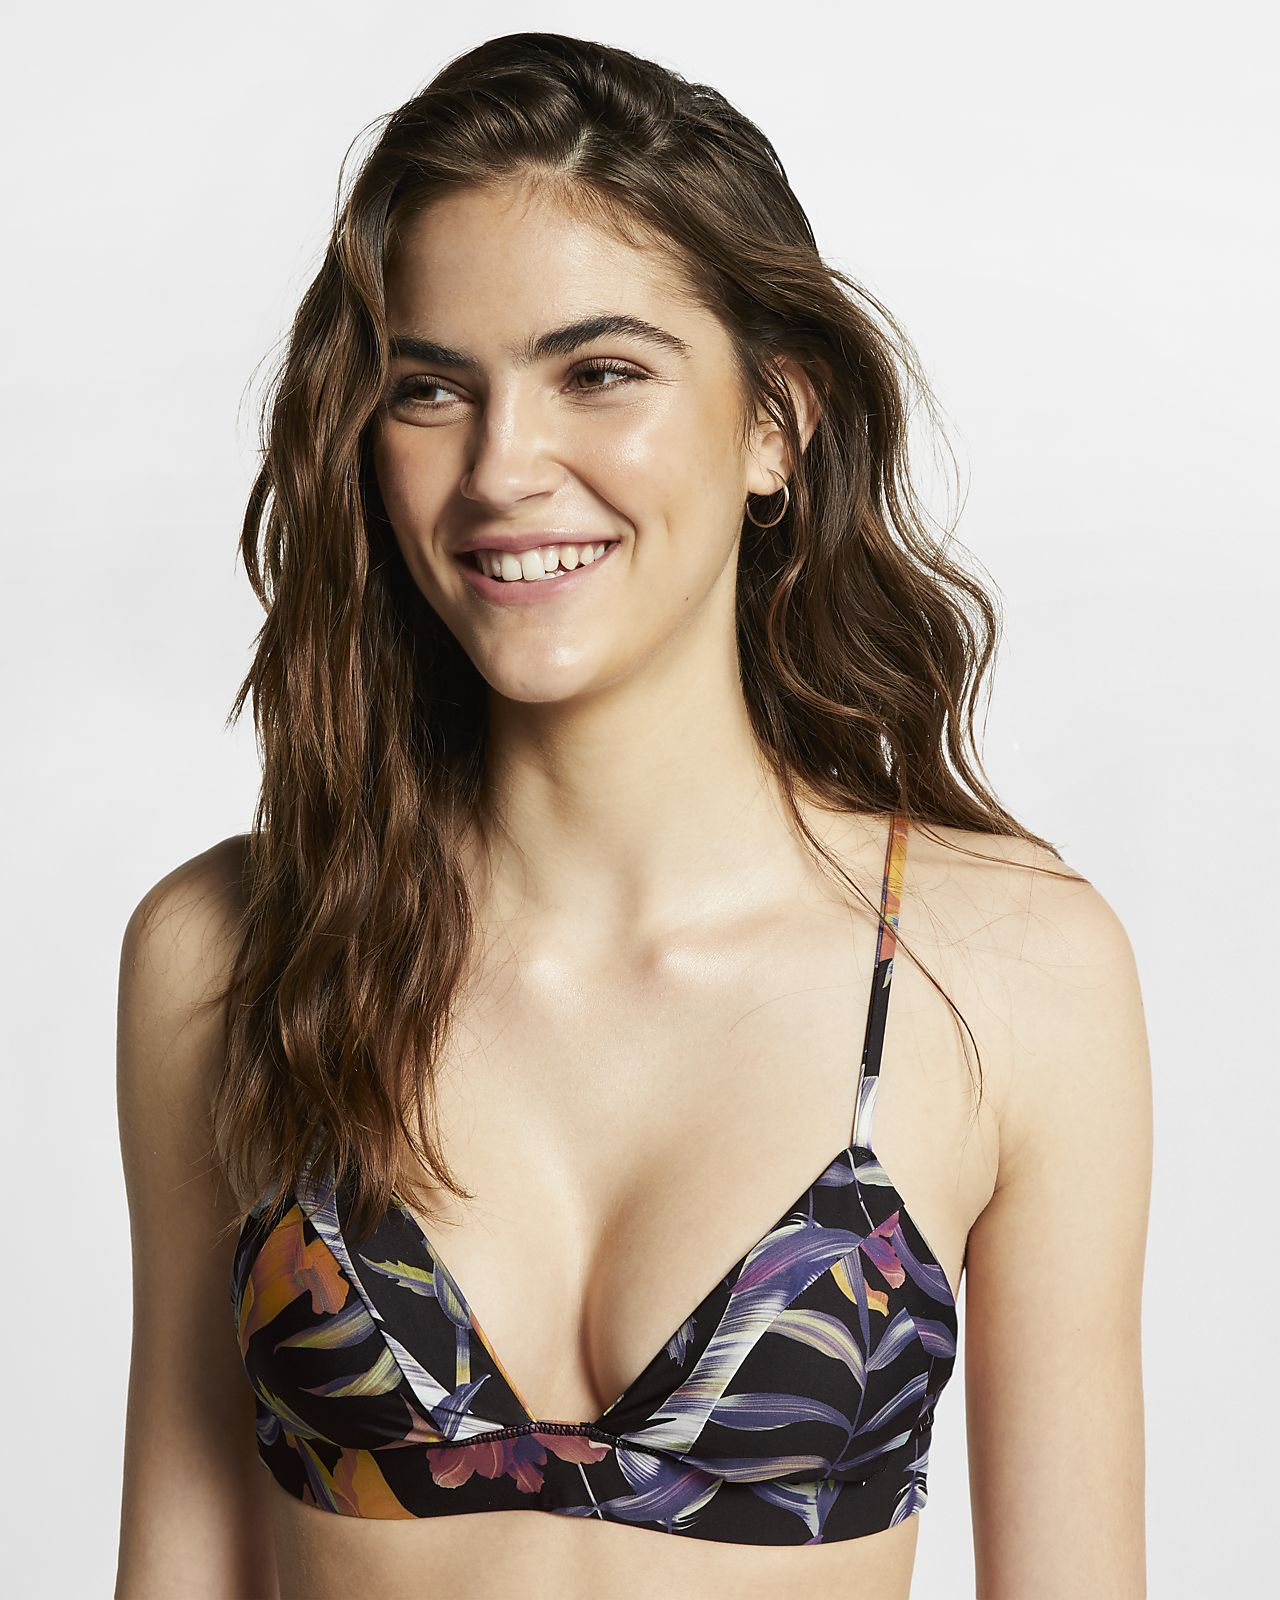 Hurley Quick Dry Women's Floral Bralette Surf Top